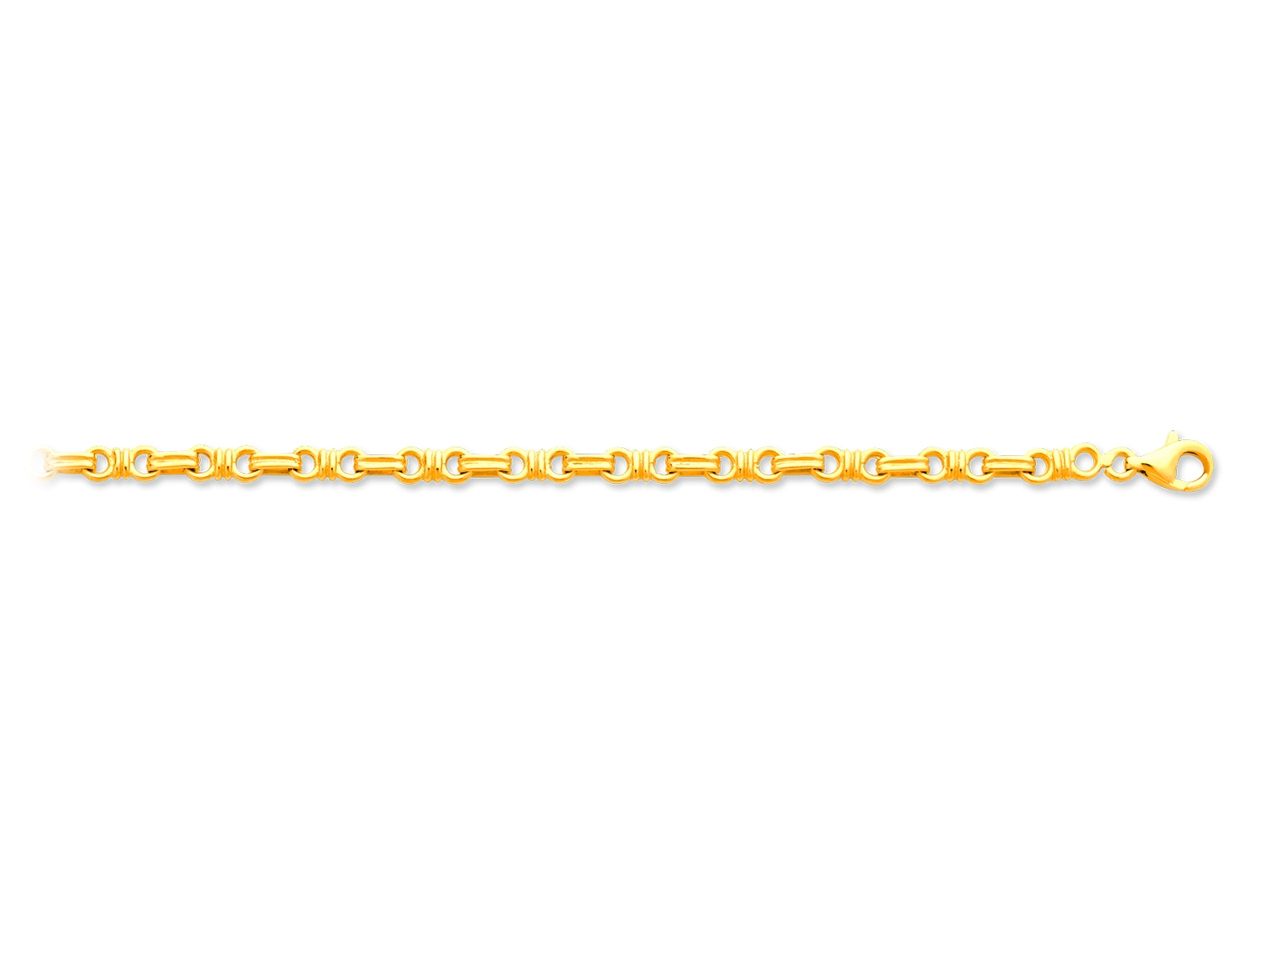 Bracelet noeuds, Or jaune 18k, 4,4 mm, 20 cm